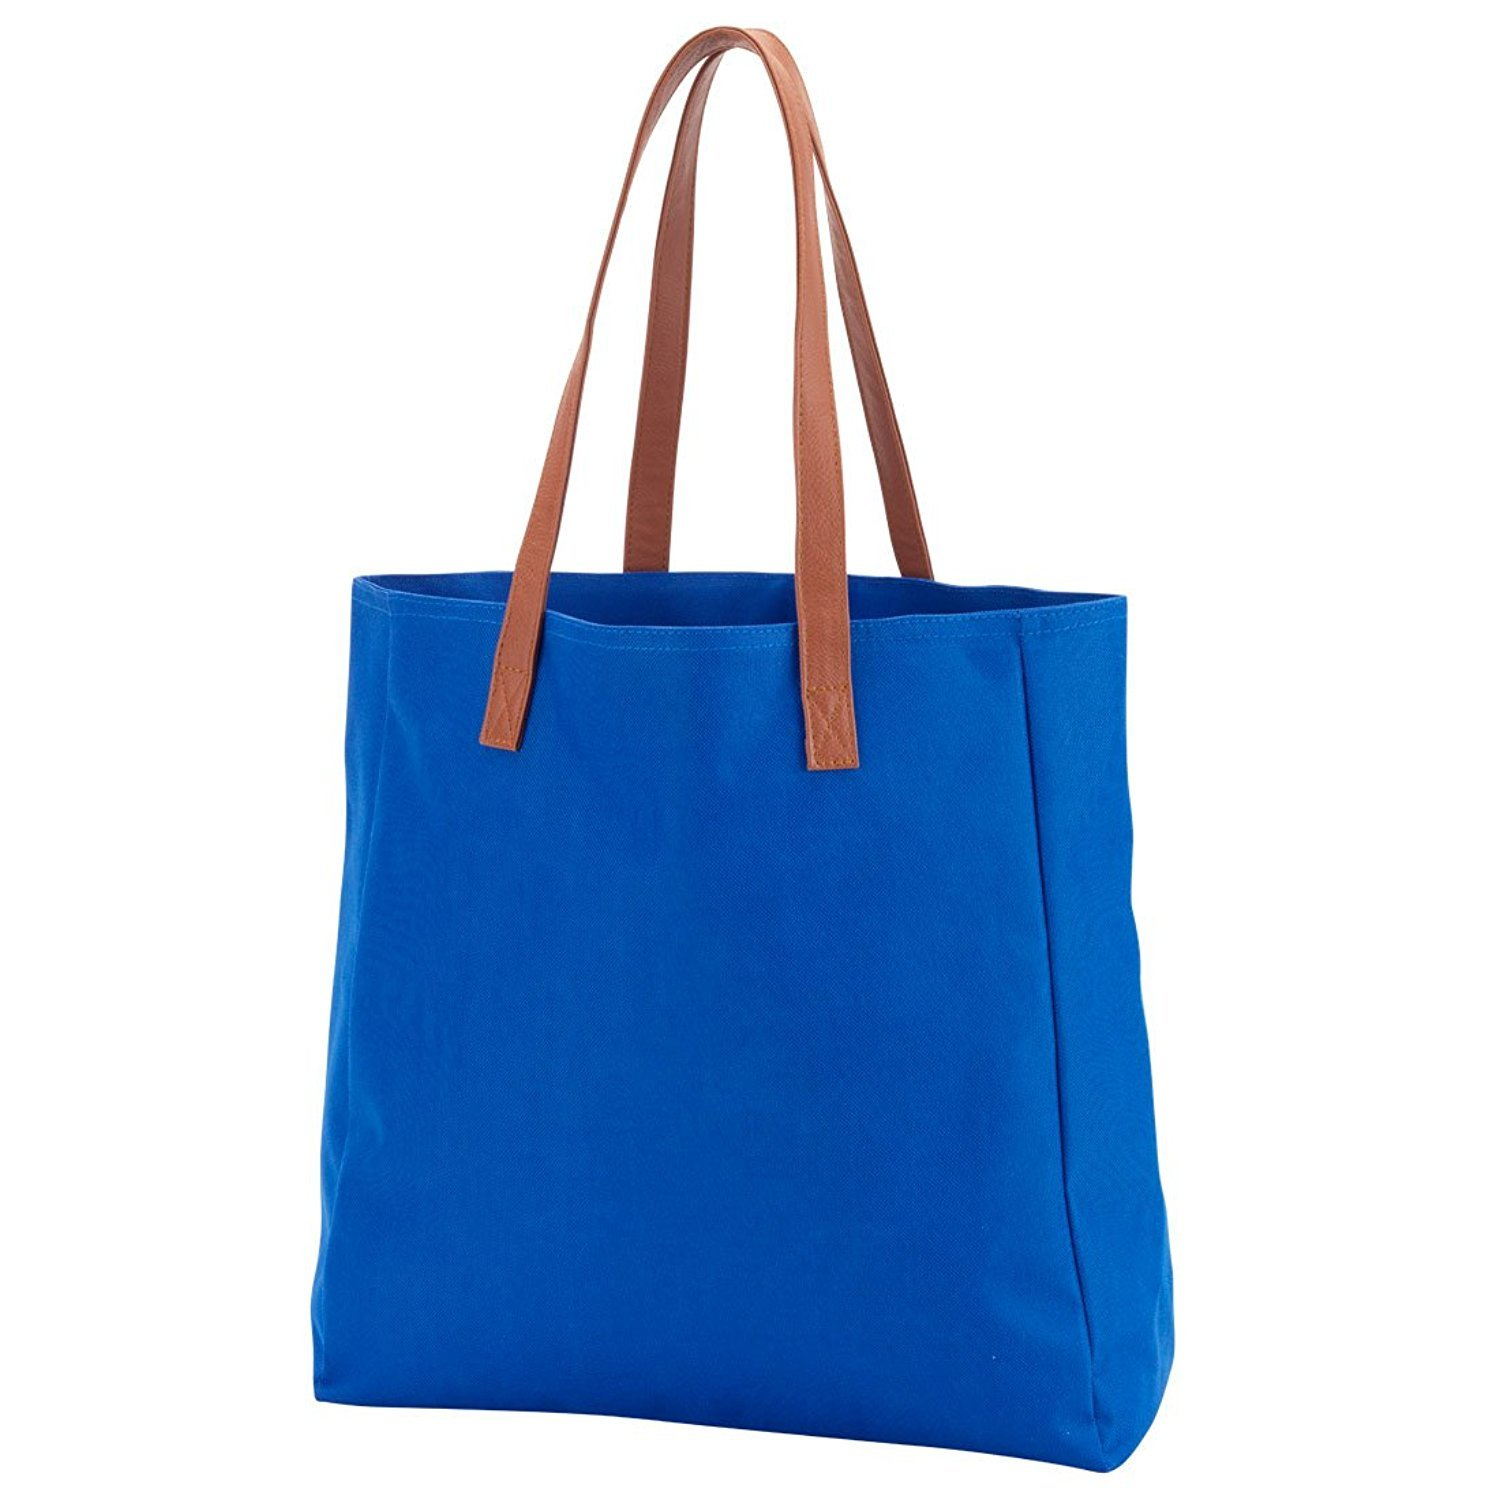 0639f1d6d9 Amazon.com  High Fashion Solid Tote Bag - Personalization Available  101  Beach